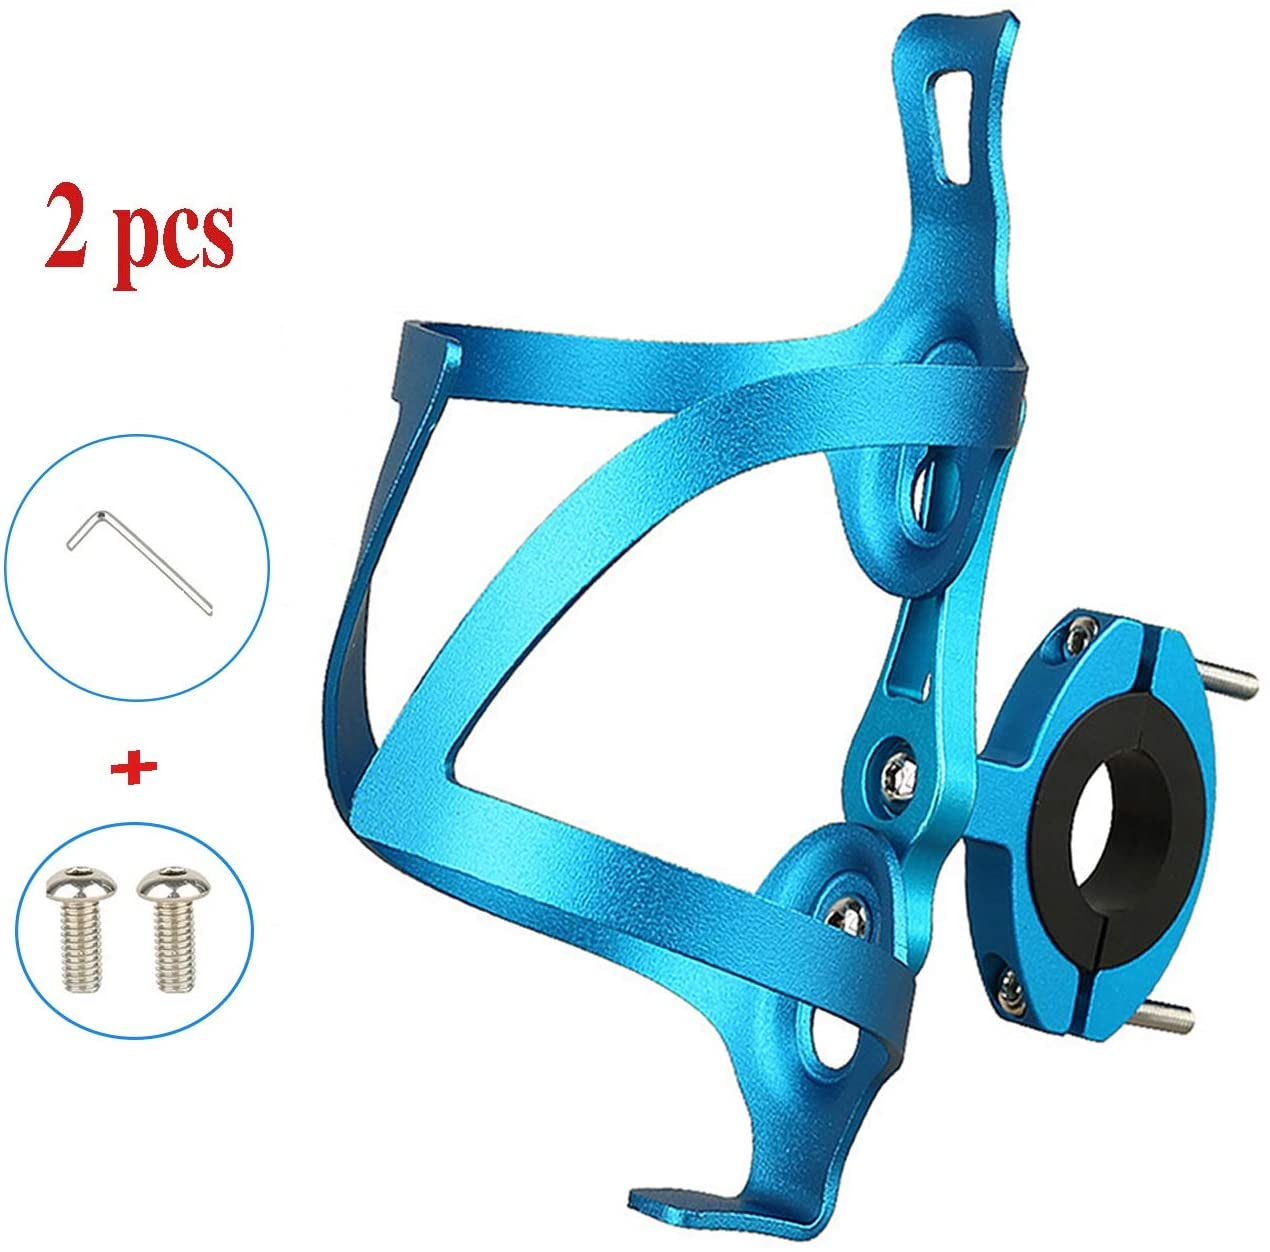 LOOZY Bicycle Water Bottle Cage Strong And Lightweight With Screws Hex Keys Quick And Easy To Mount Water Bottle Brackets Lightweight Aluminum Alloy For Outdoor Activities,mtb Stroller Motorcycles